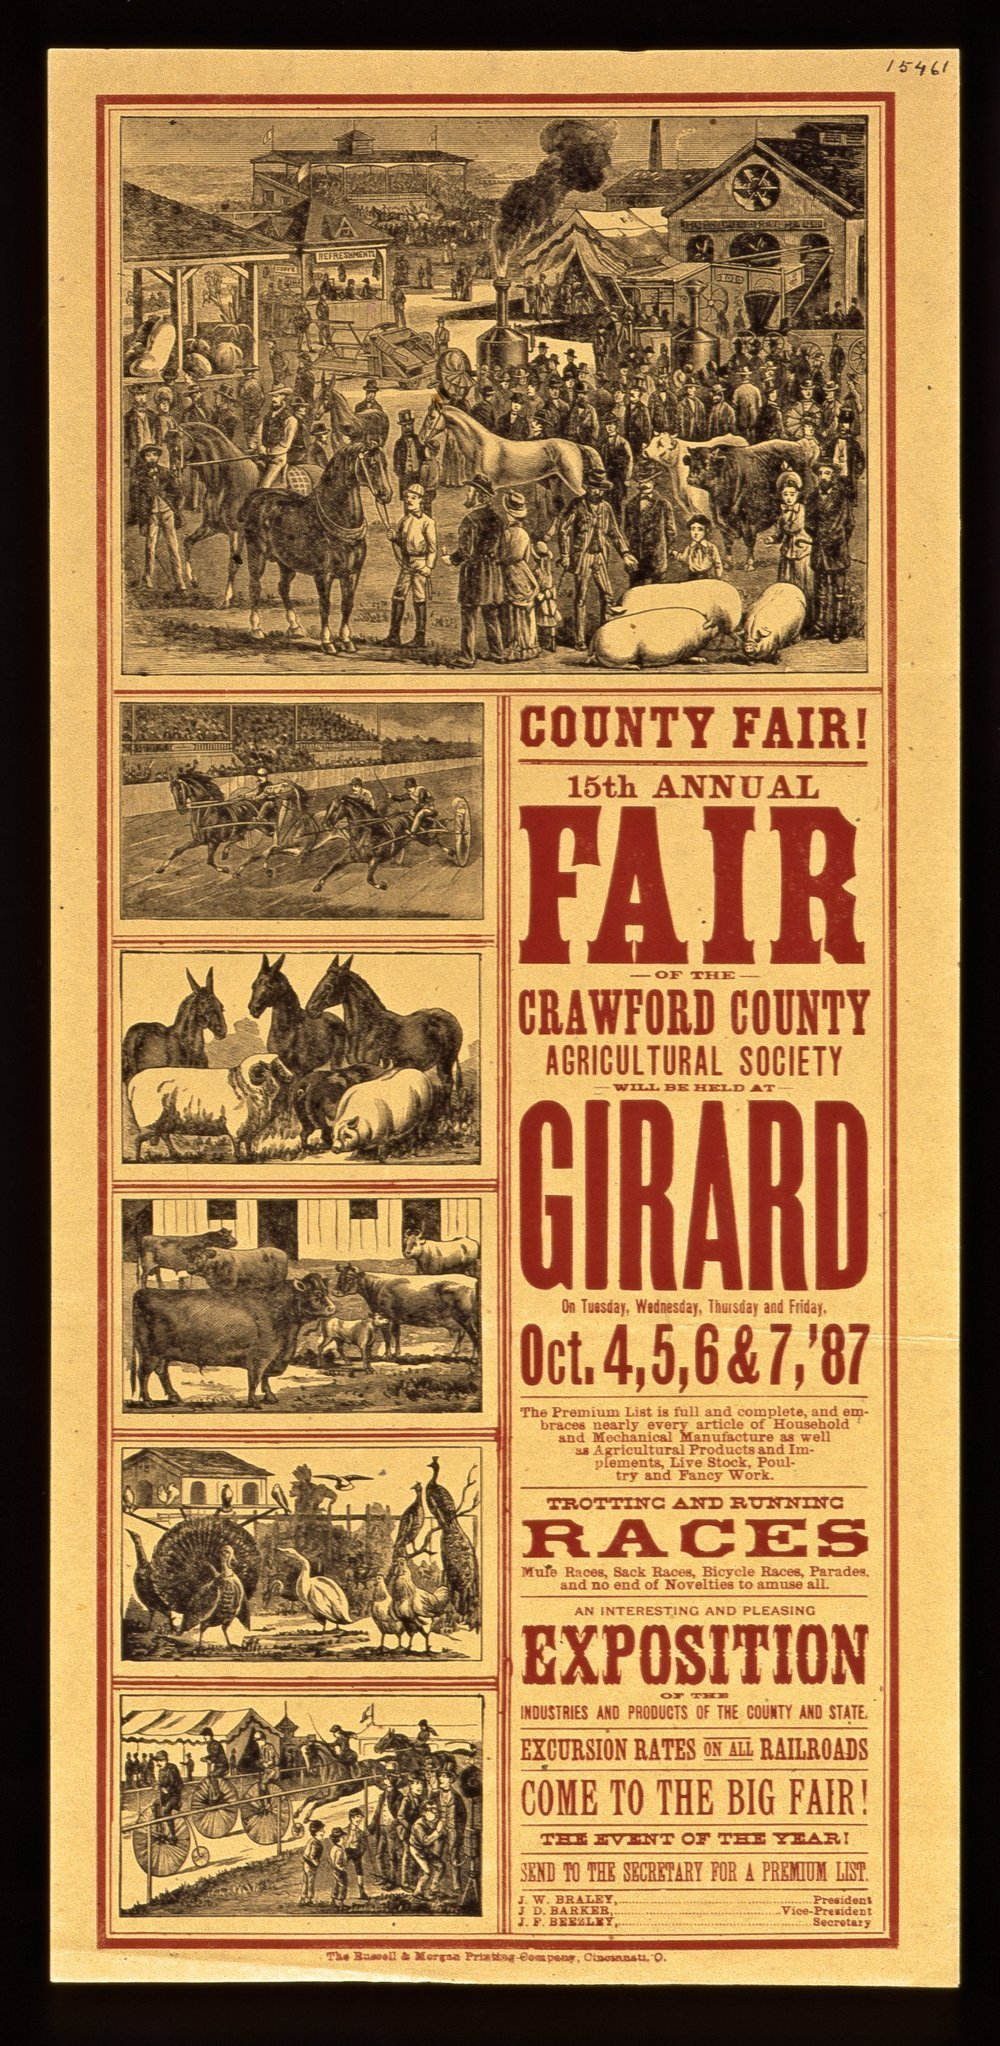 Fifteenth annual fair of the Crawford County Agricultural Society, Girard, Kansas